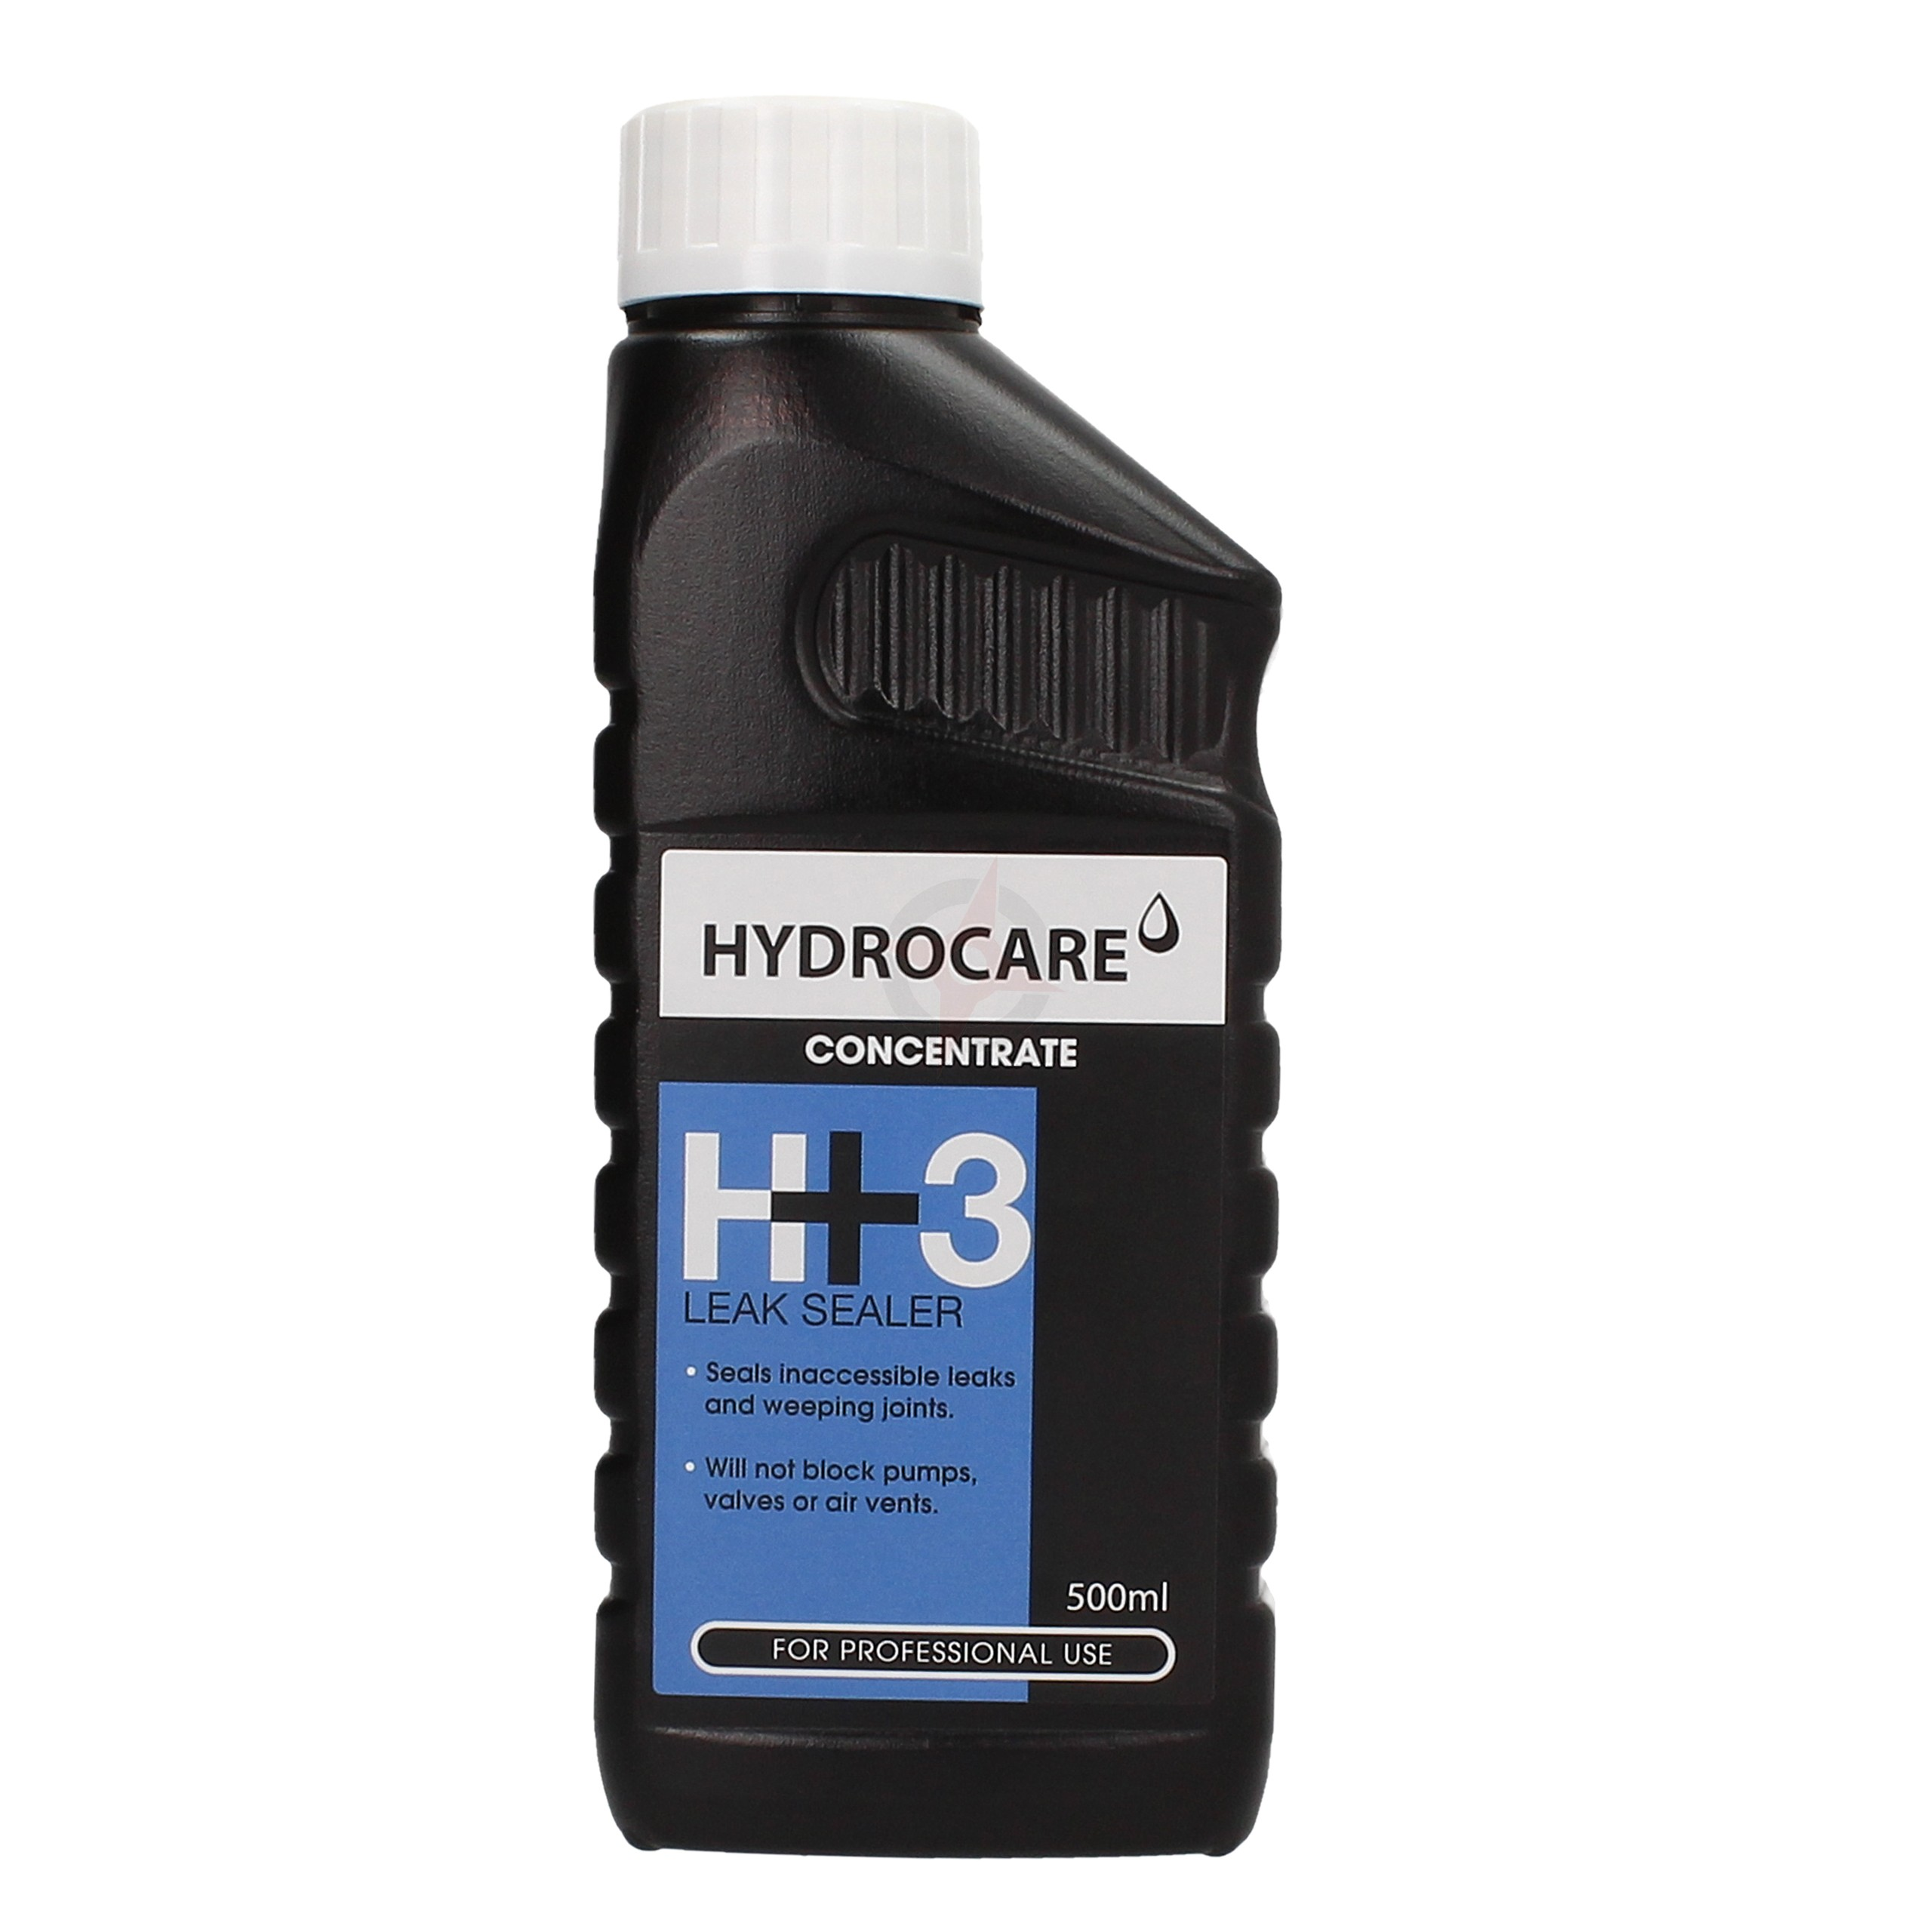 Hydrocare H+3 Leak Sealer - 500ml Concentrated